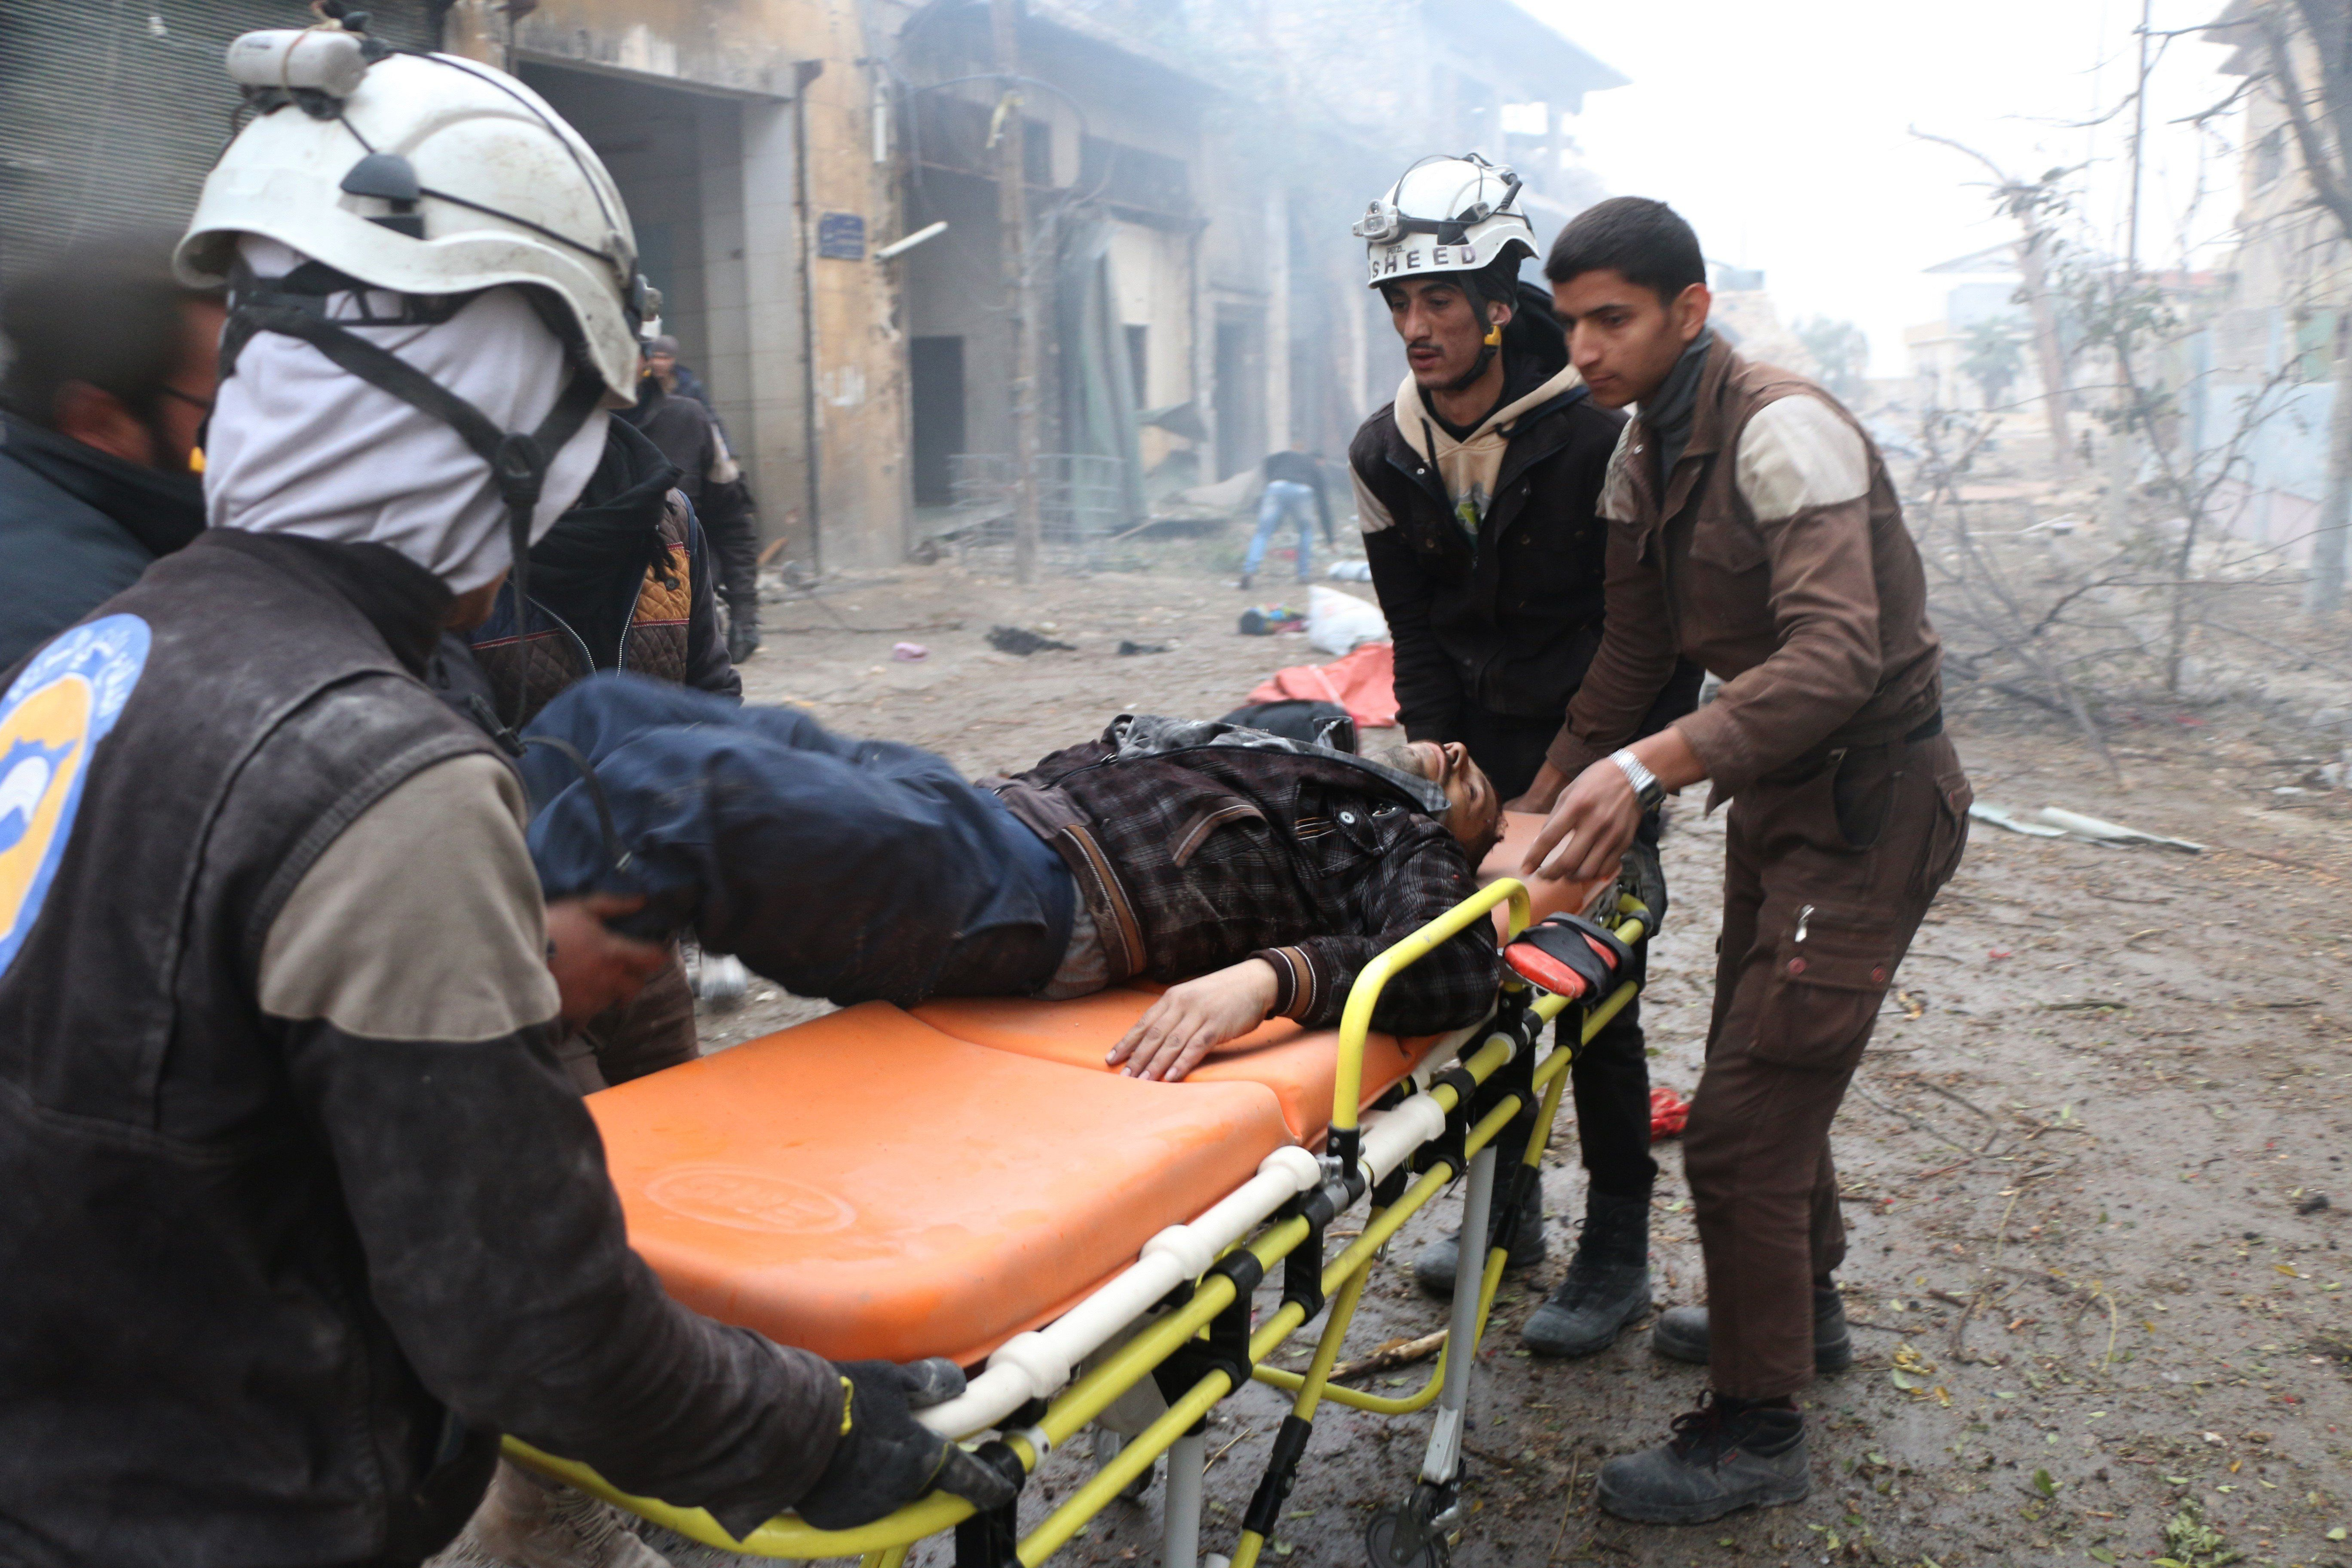 ALEPPO, SYRIA - NOVEMBER 30: Search and rescue team members hospitalize a wounded civilian at the site of blast after Assad Regime's strike over civilians in residential areas of Jub Al Quba neighborhood of Aleppo, Syria on November 30, 2016. At least 45 civilians including children and women, killed during the attack. (Photo by Jawad al Rifai/Anadolu Agency/Getty Images)